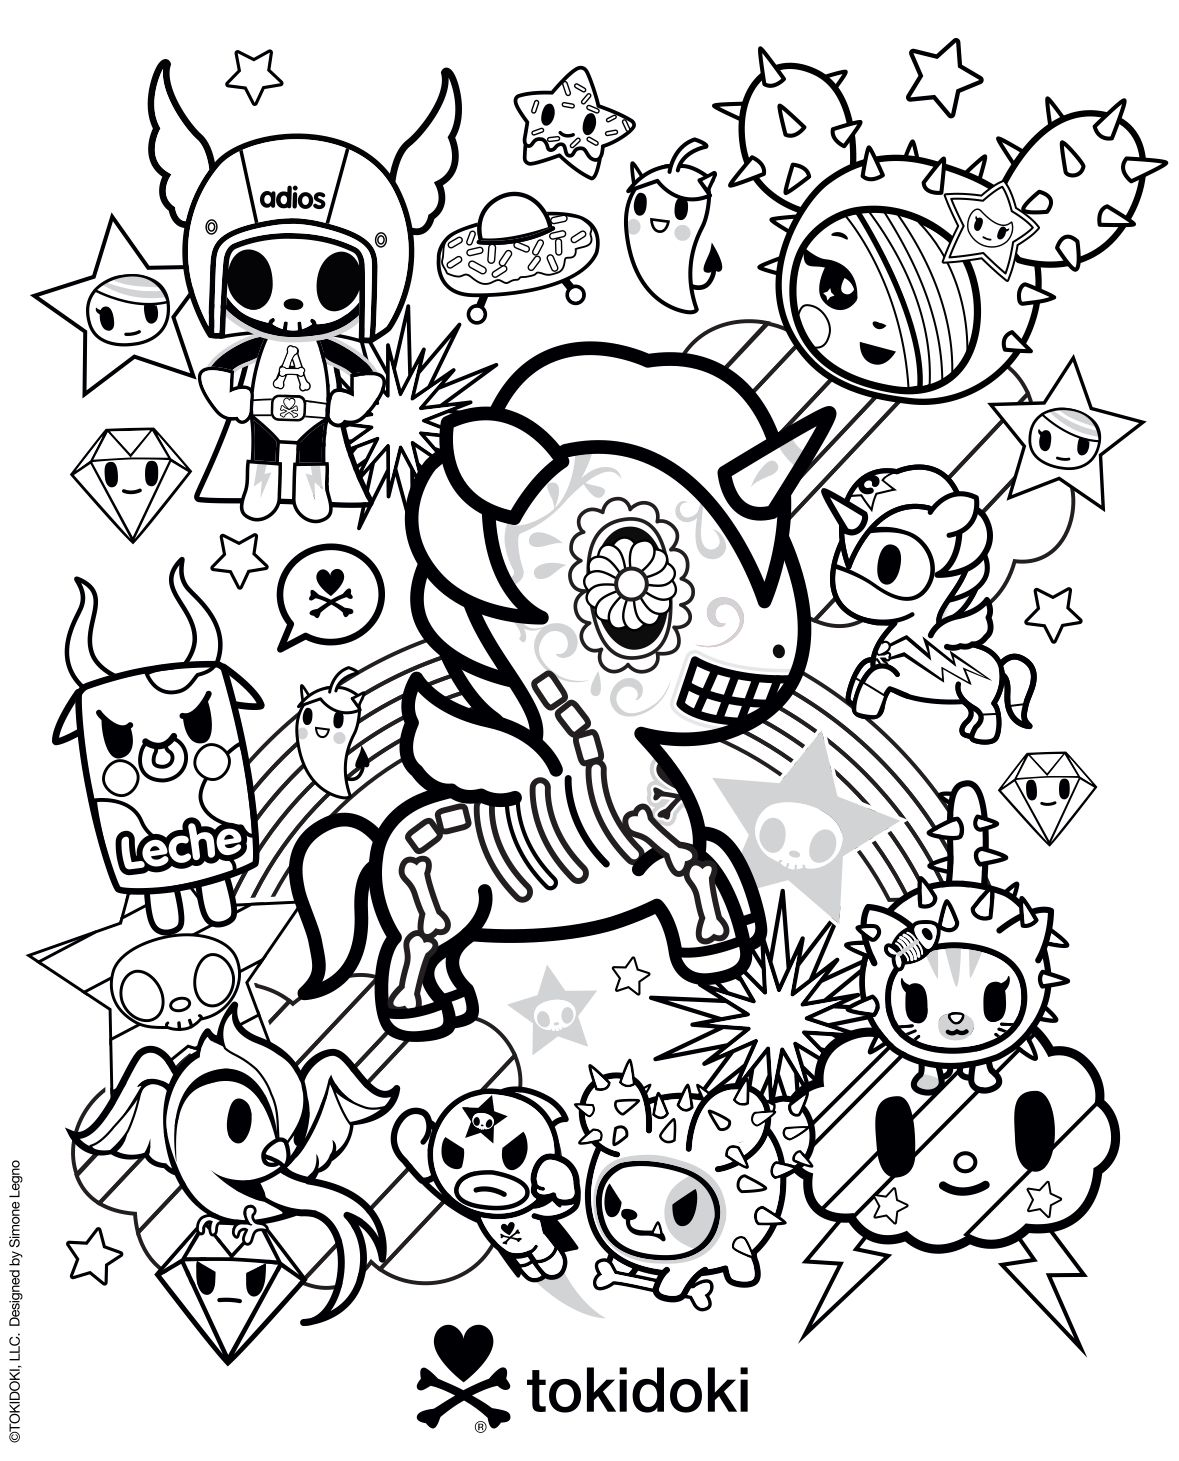 tokidoki coloring pages Tokidoki Colouring Page | coloring in 2019 | Coloring pages  tokidoki coloring pages